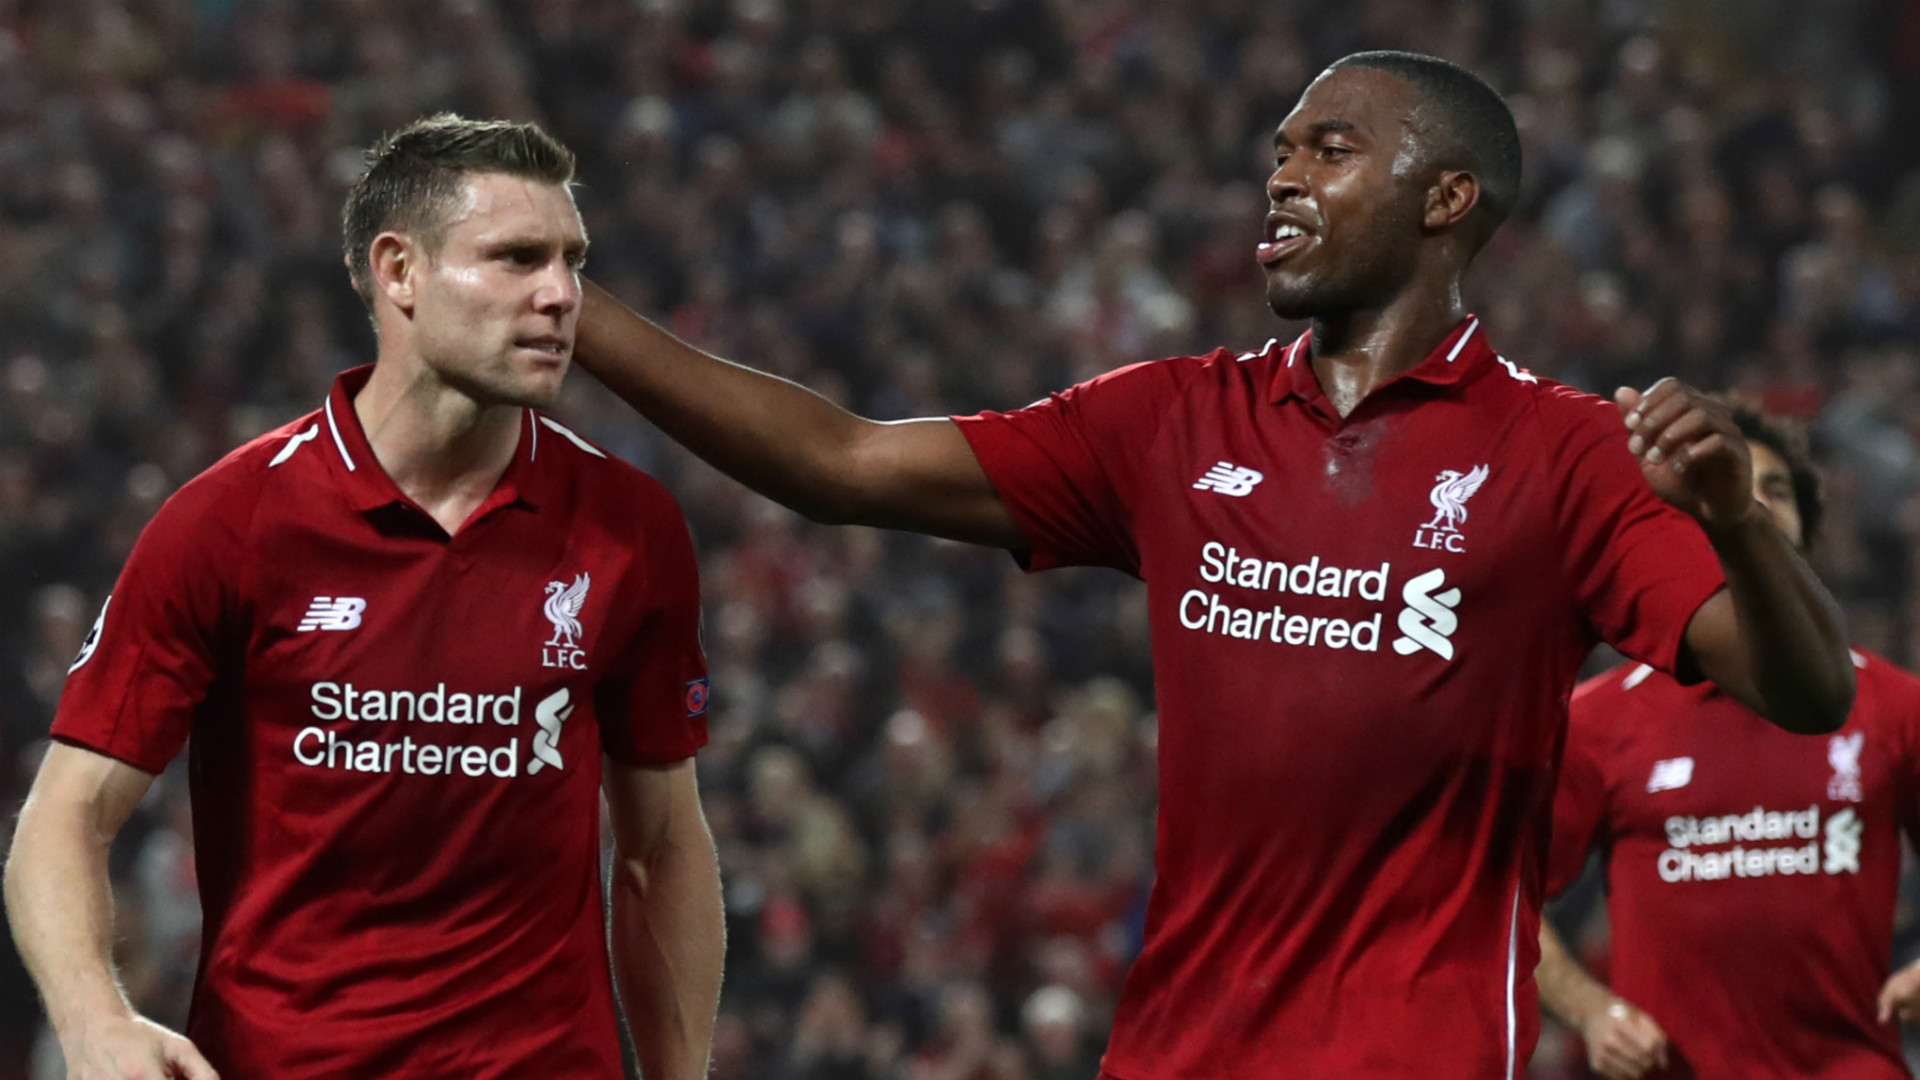 James Milner Daniel Sturridge Liverpool 2018-19